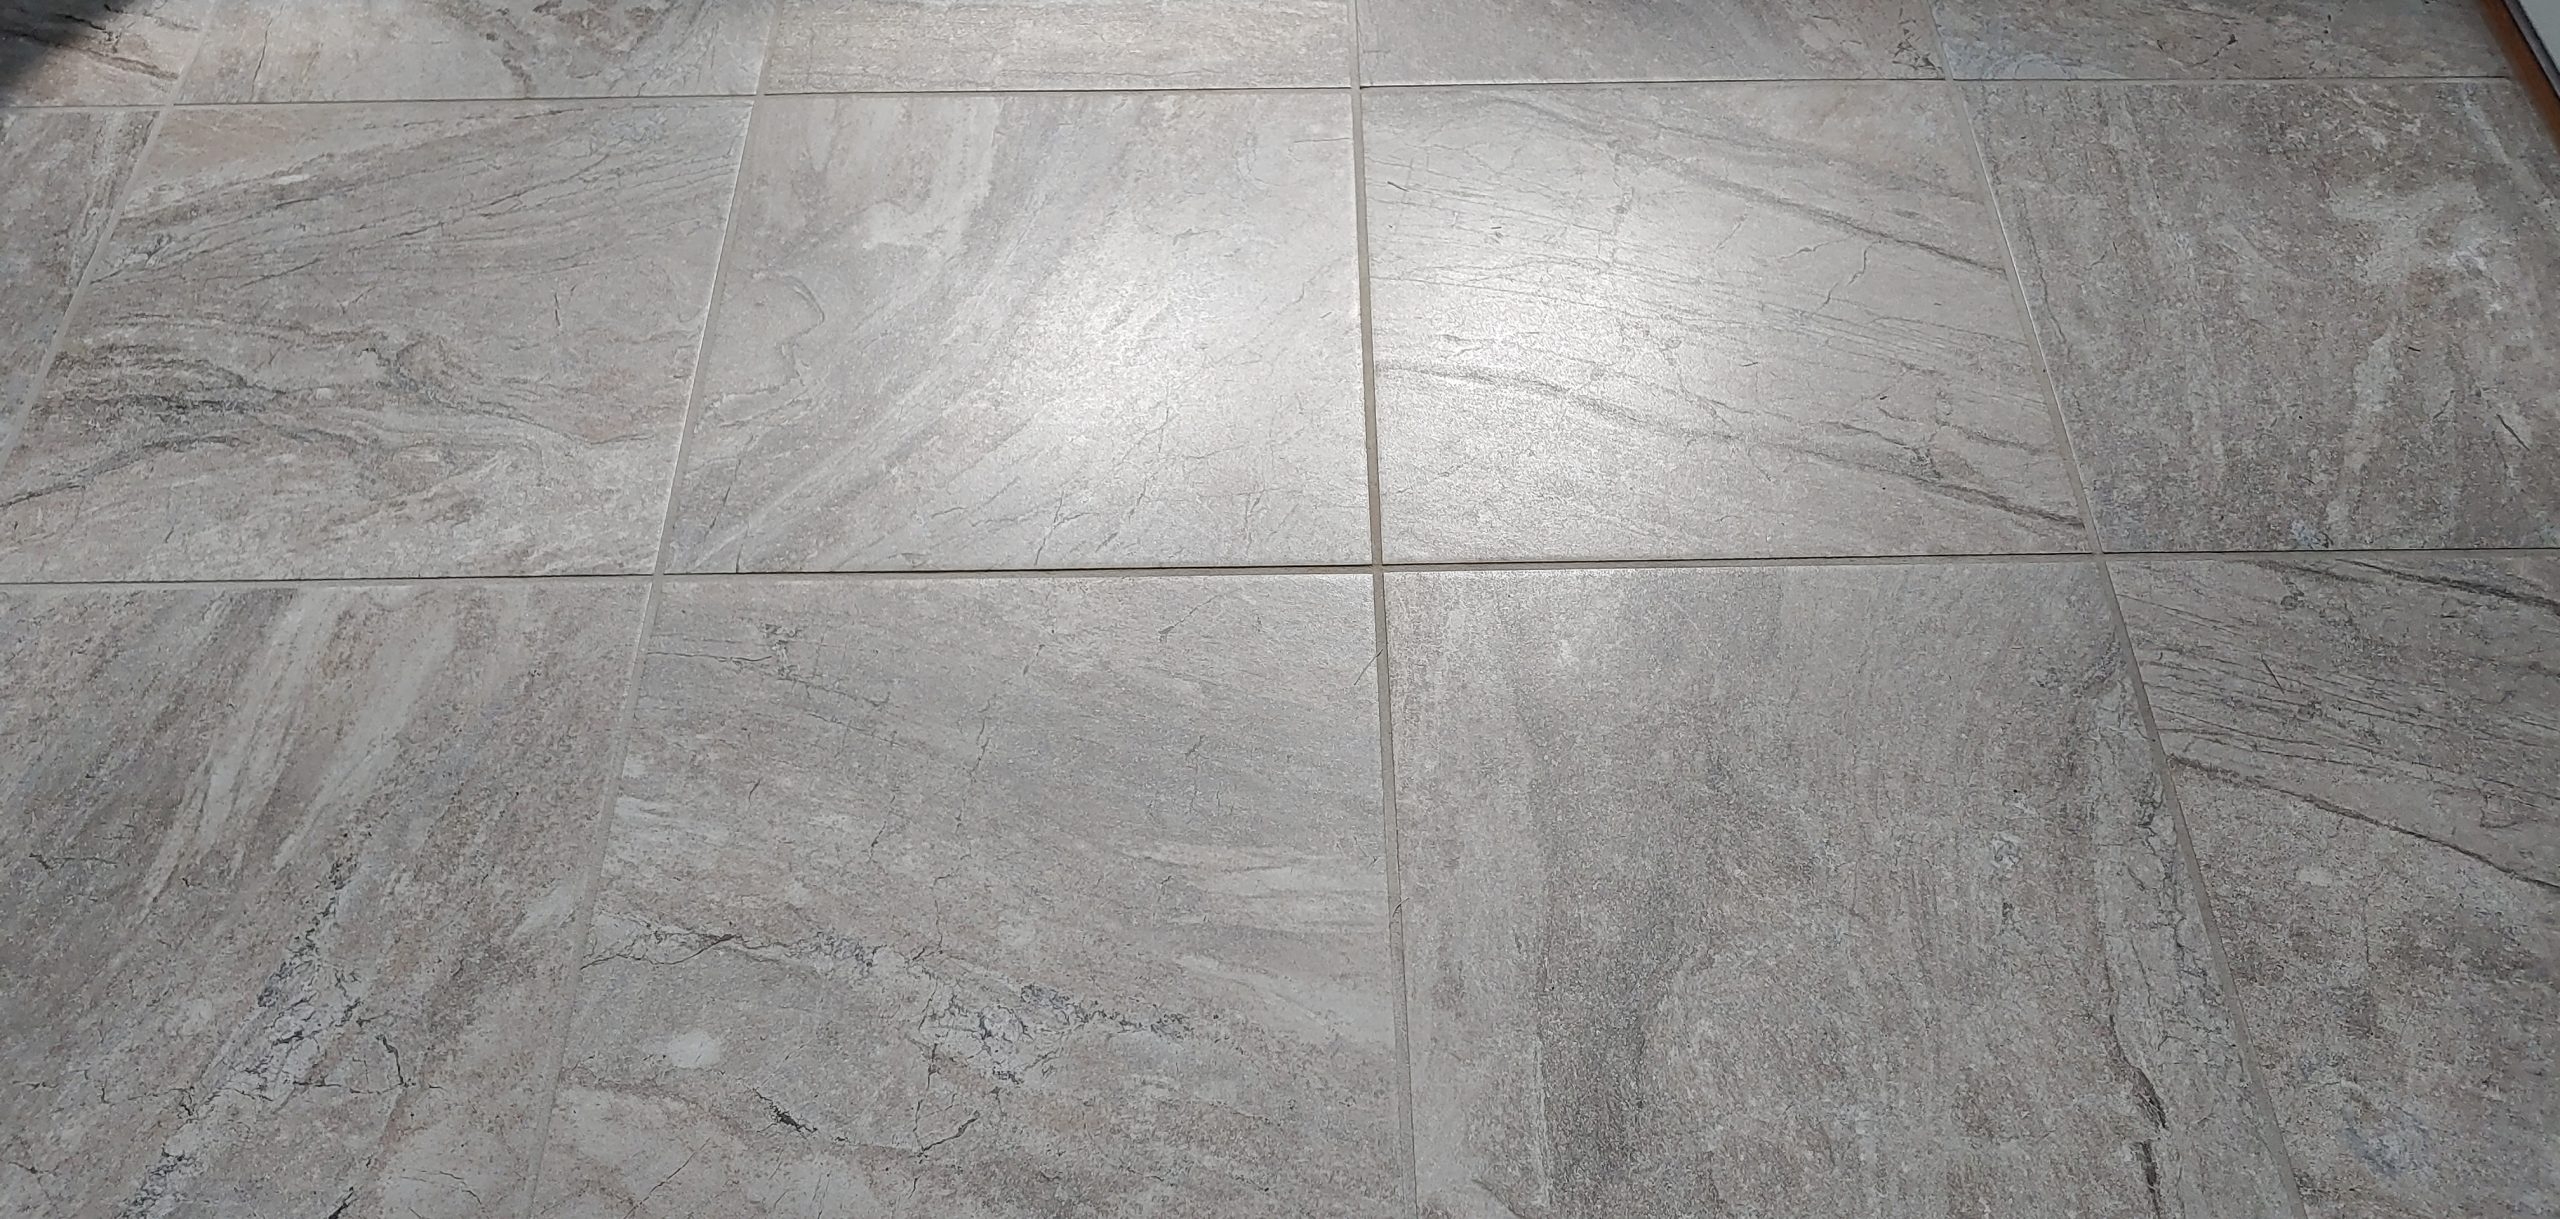 Professional_Surface_Restoration_Tile_and_Grout_Cleaning_Toledo_OH